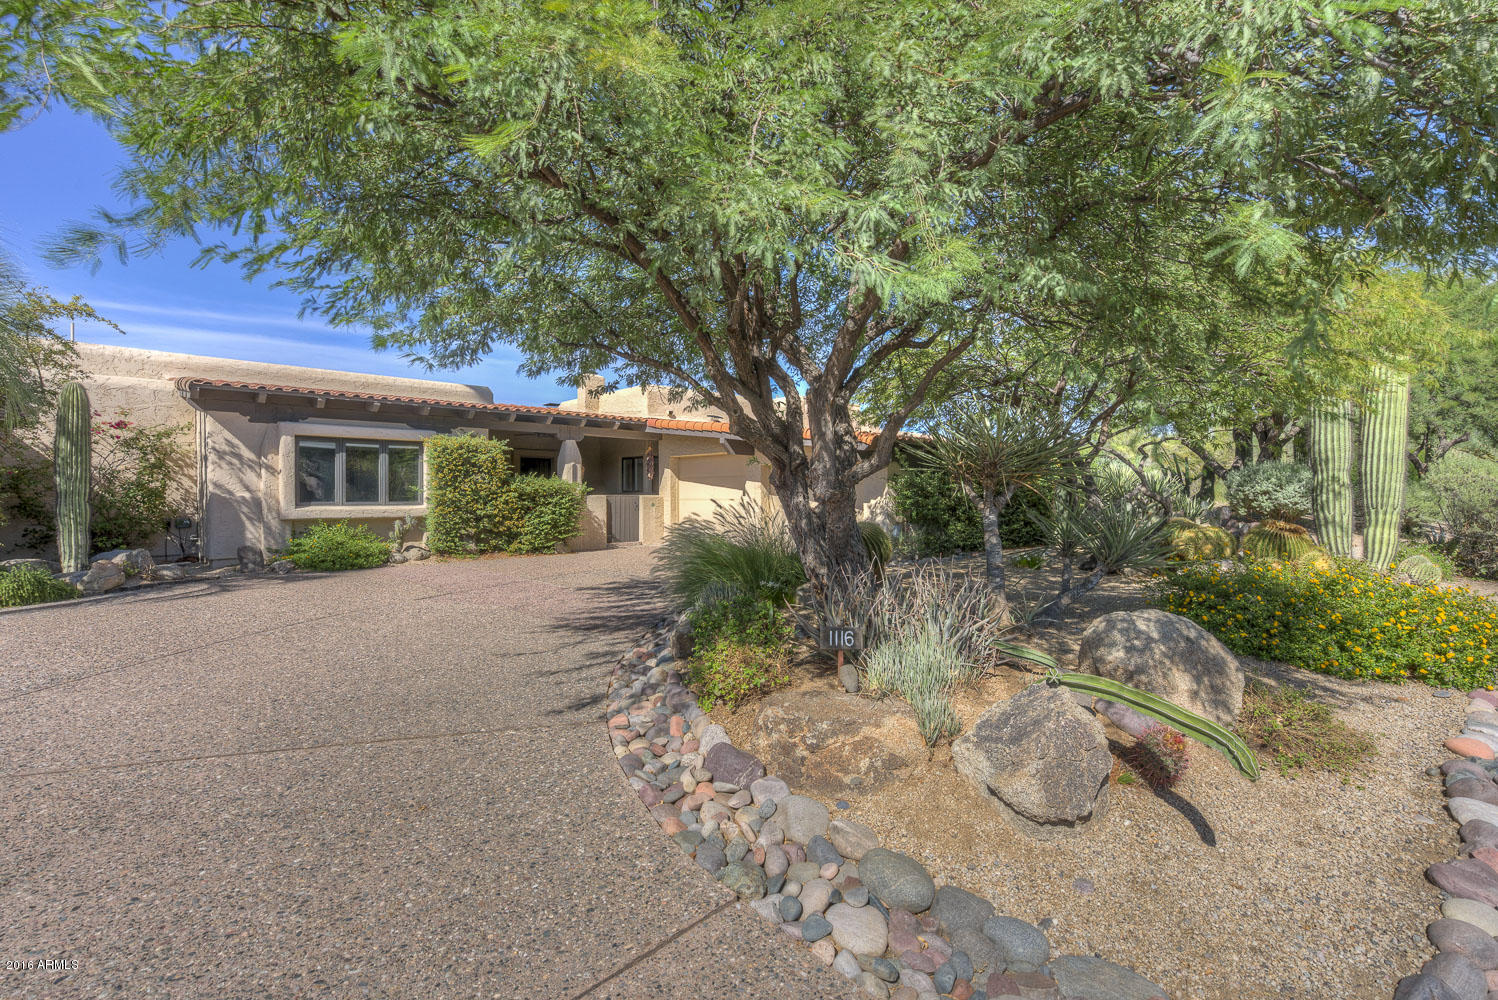 1116 S Ocotillo Circle, Carefree AZ 85377